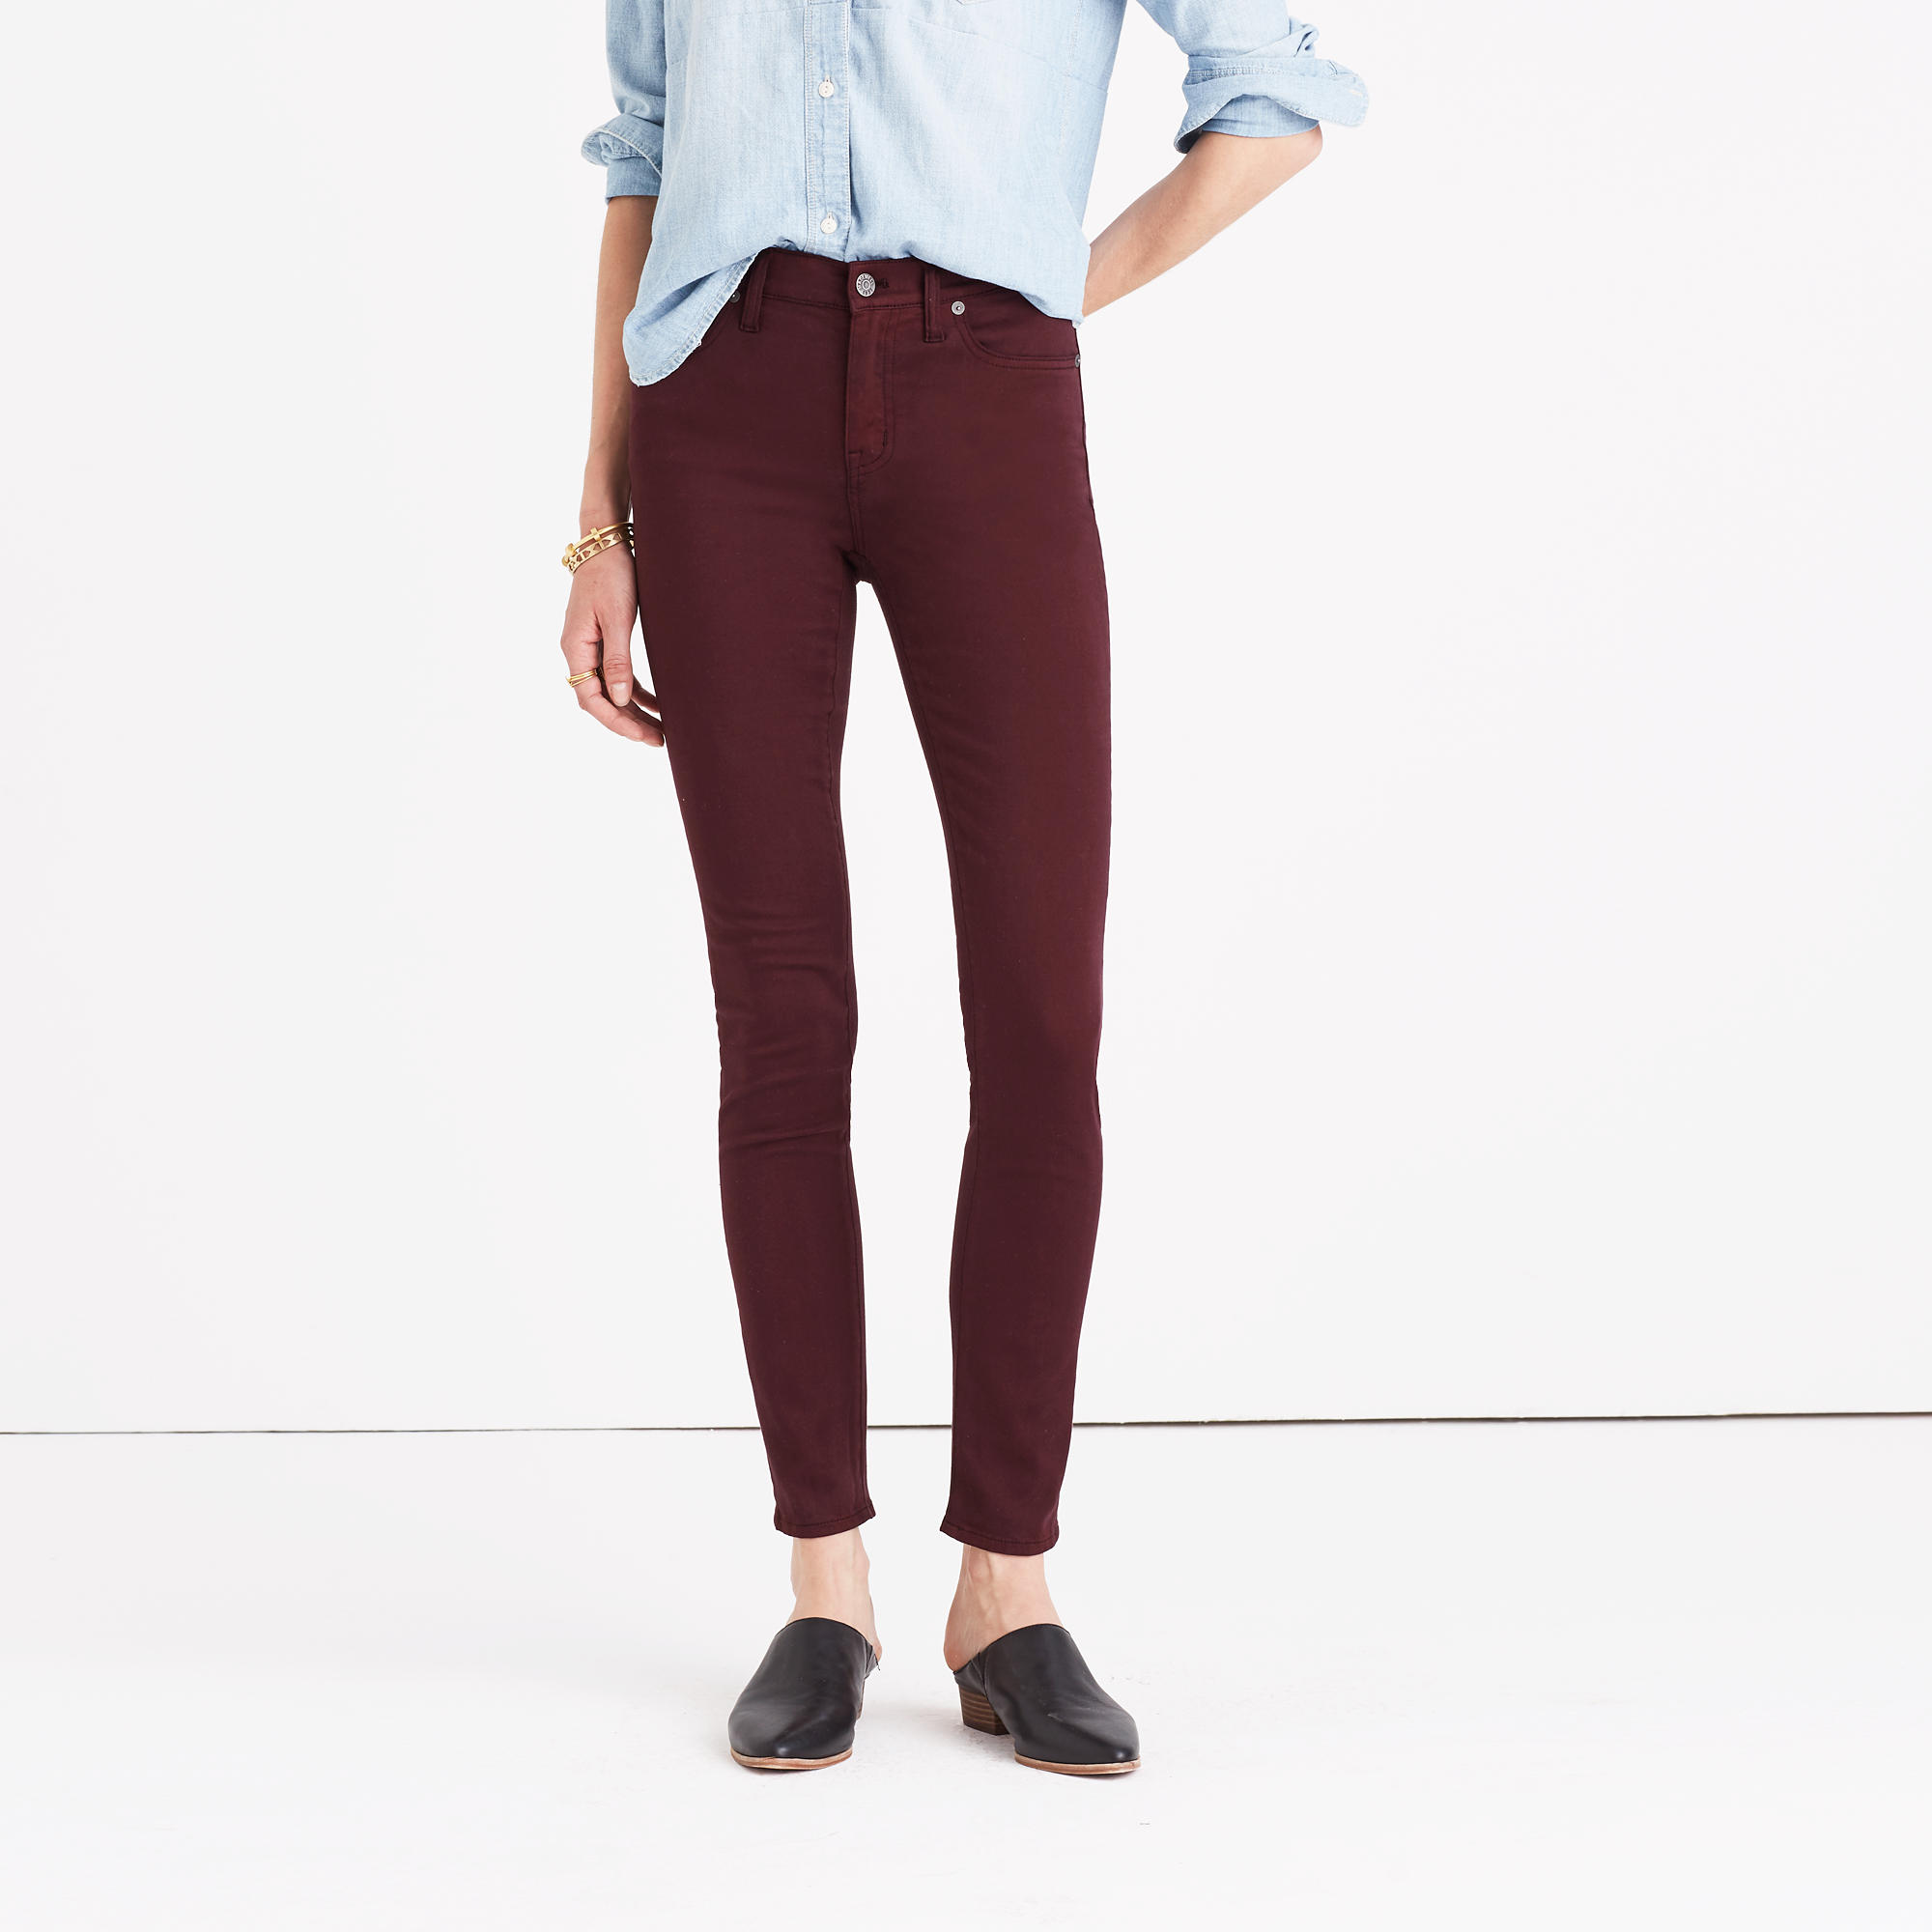 Thanksgiving Pants High-Rise Skinny Sateen Jeans